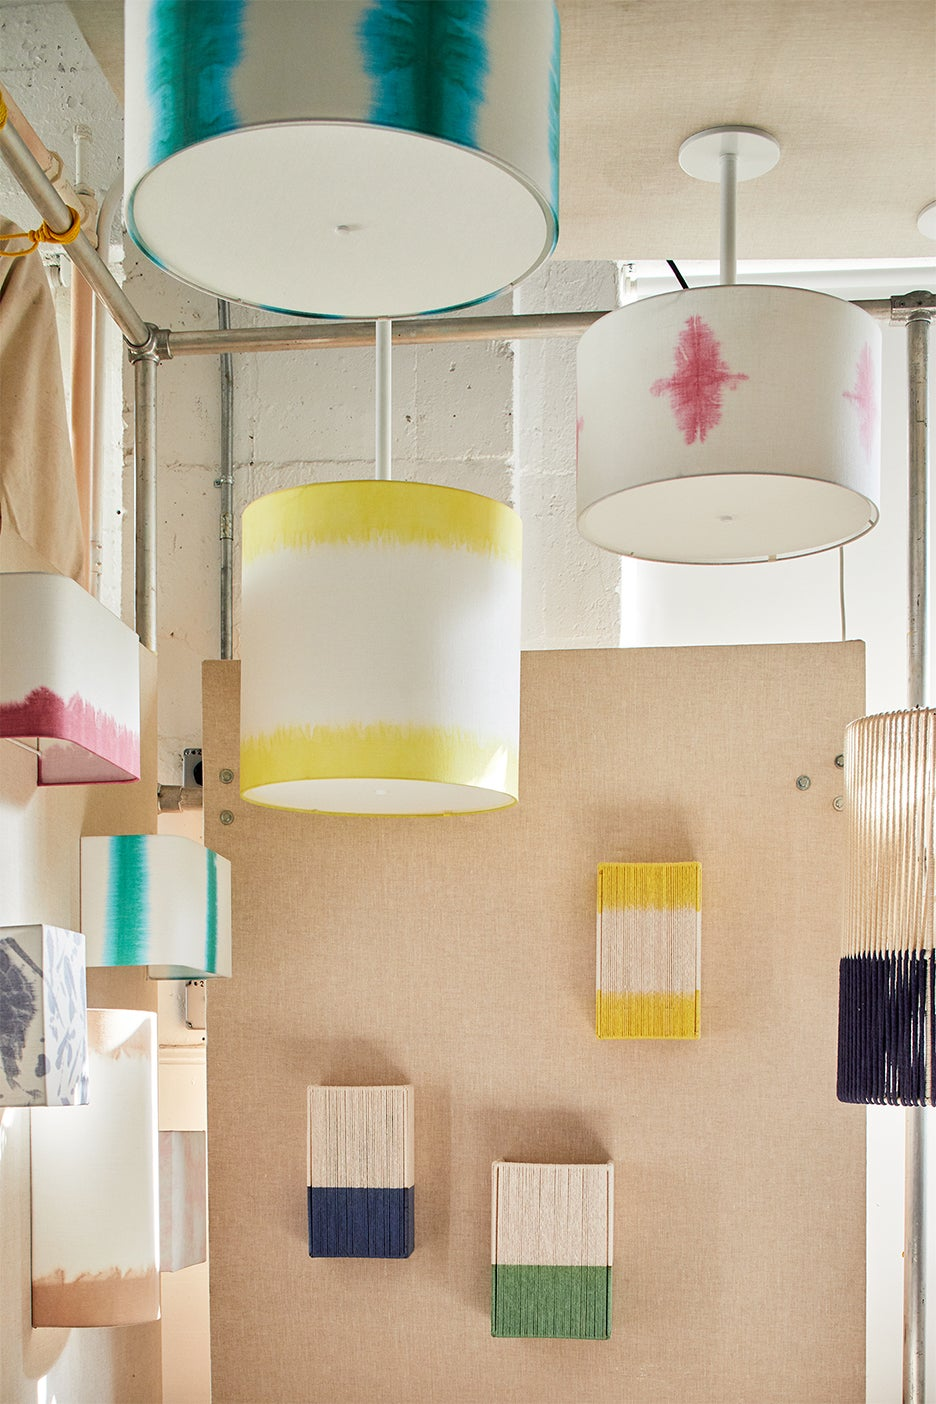 Over Bare Edison Bulbs? These Textured Lighting Ideas Are on Our Radar